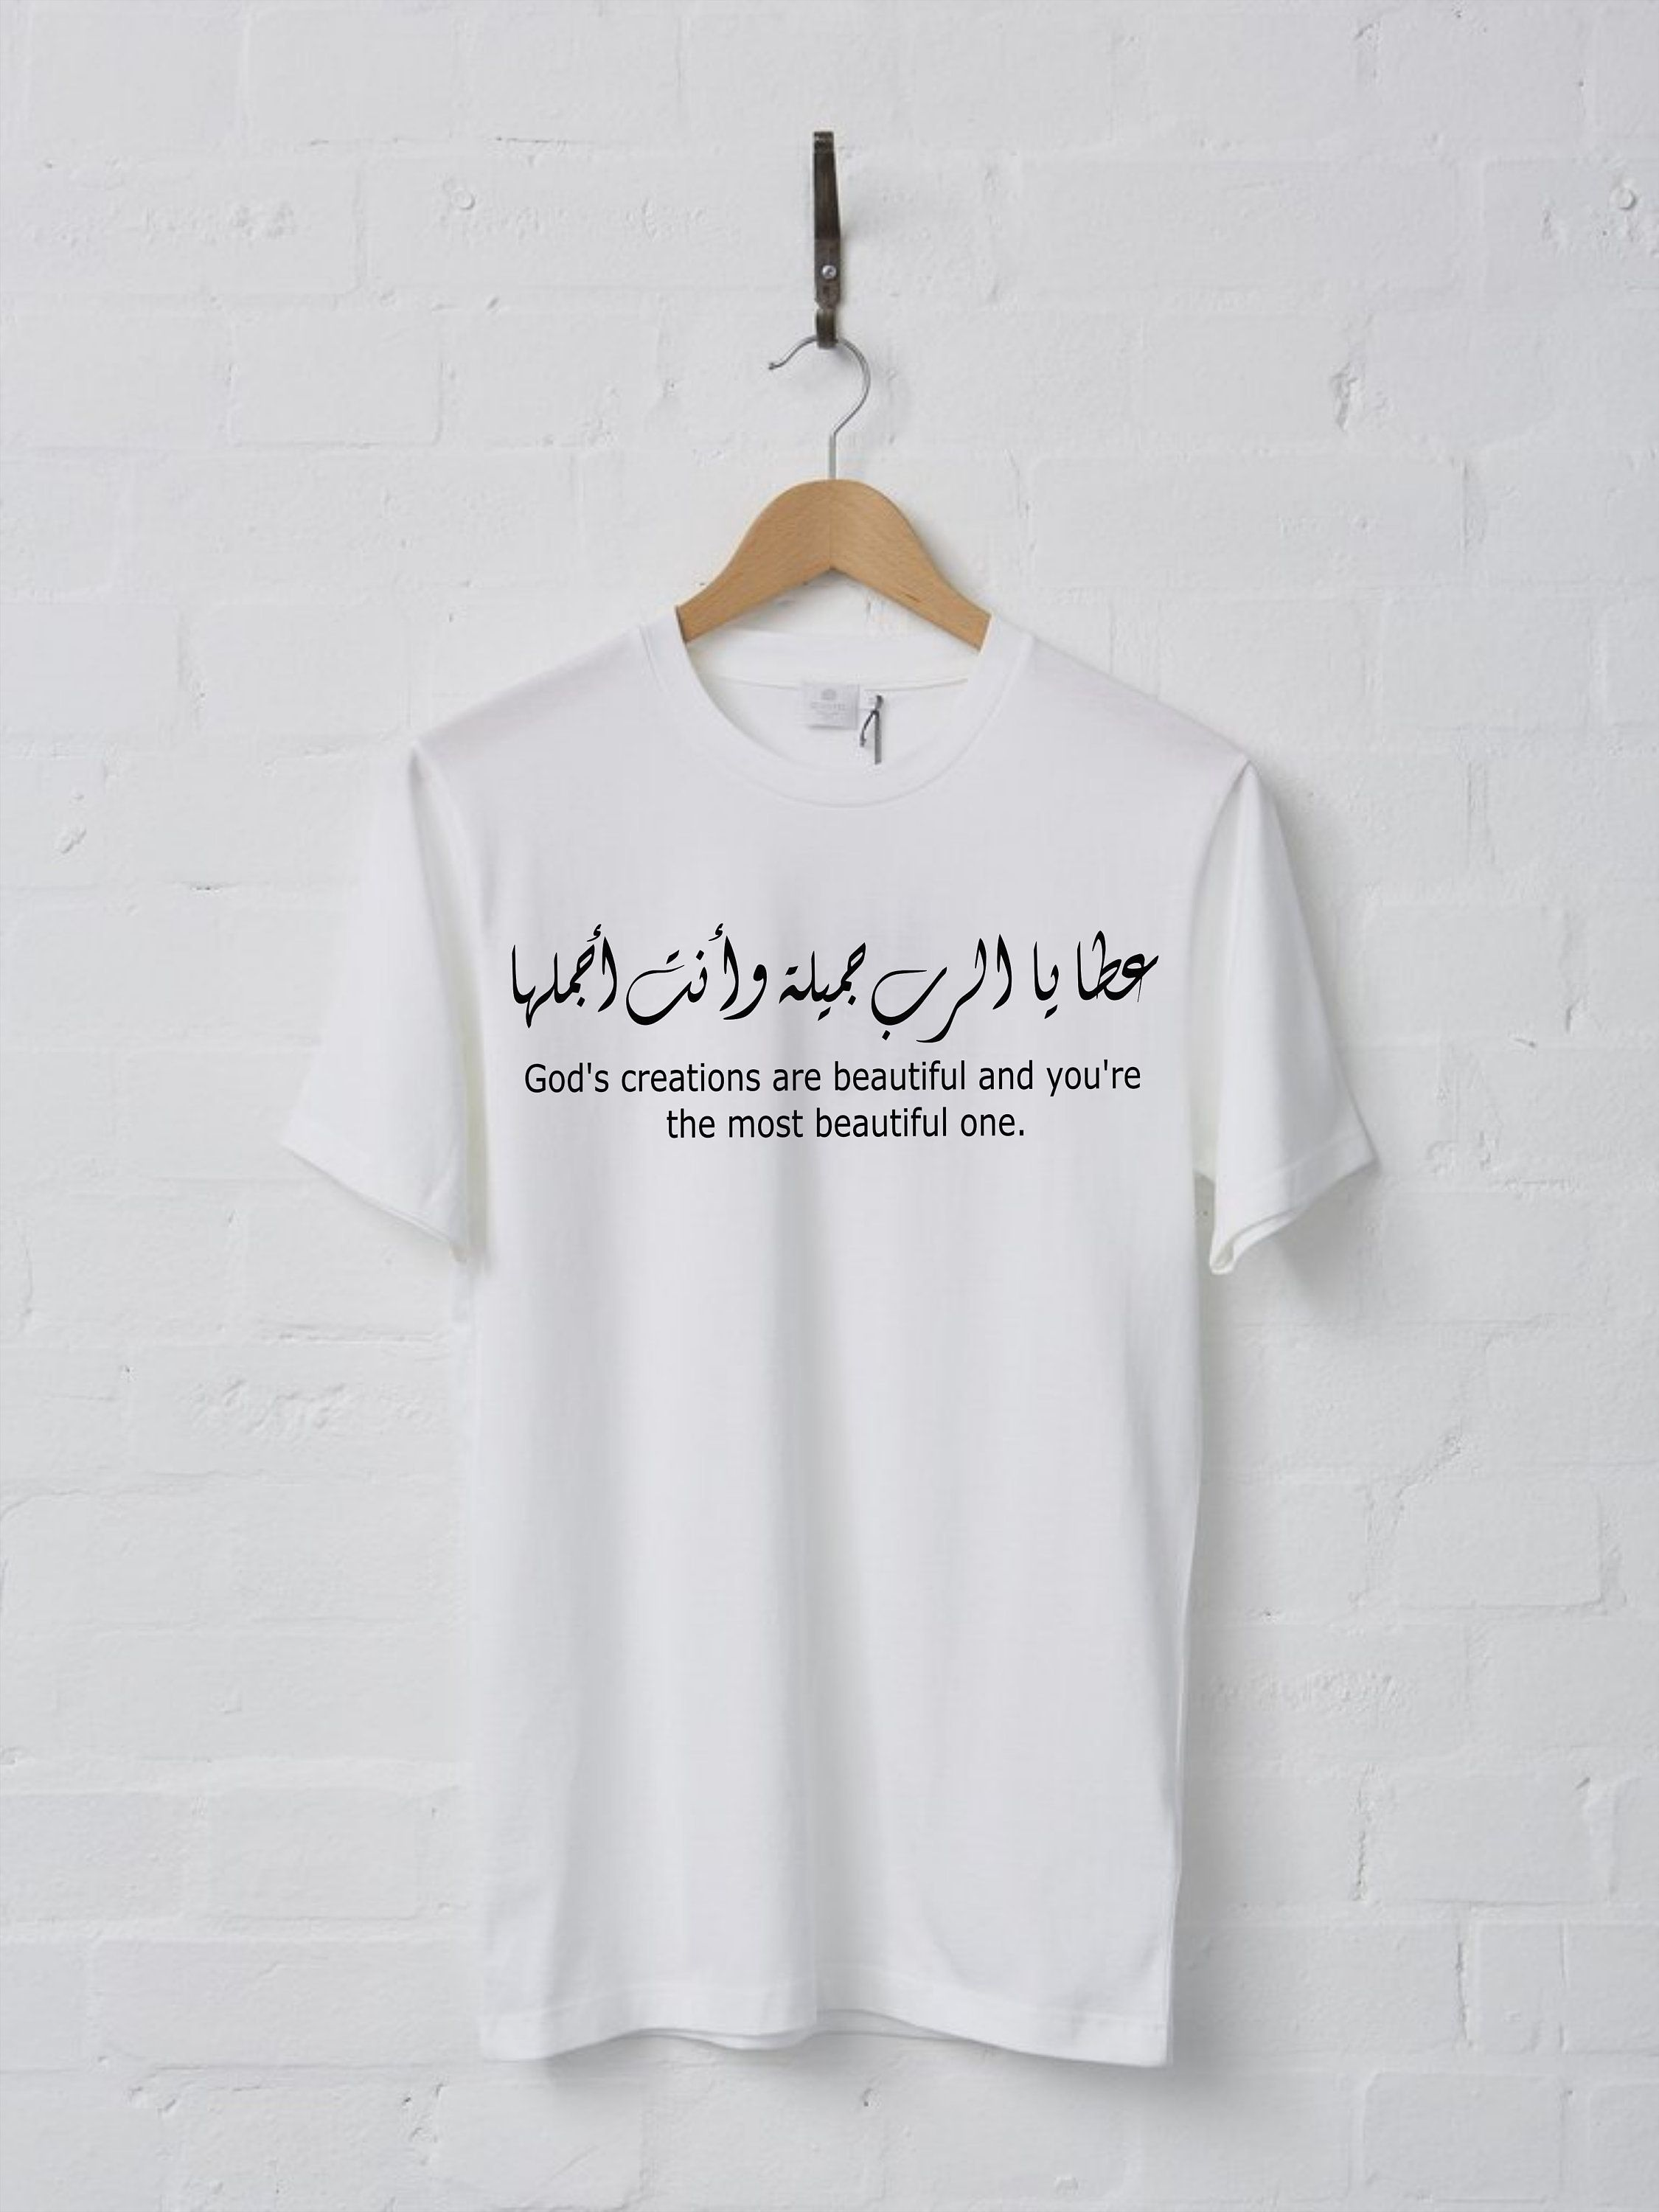 2cca9cc598 God's creation are beautiful shirt for men women clothing Arabic shirt  words shirt words tee word top words art unisex shirt words on shirts by  GualaShop on ...